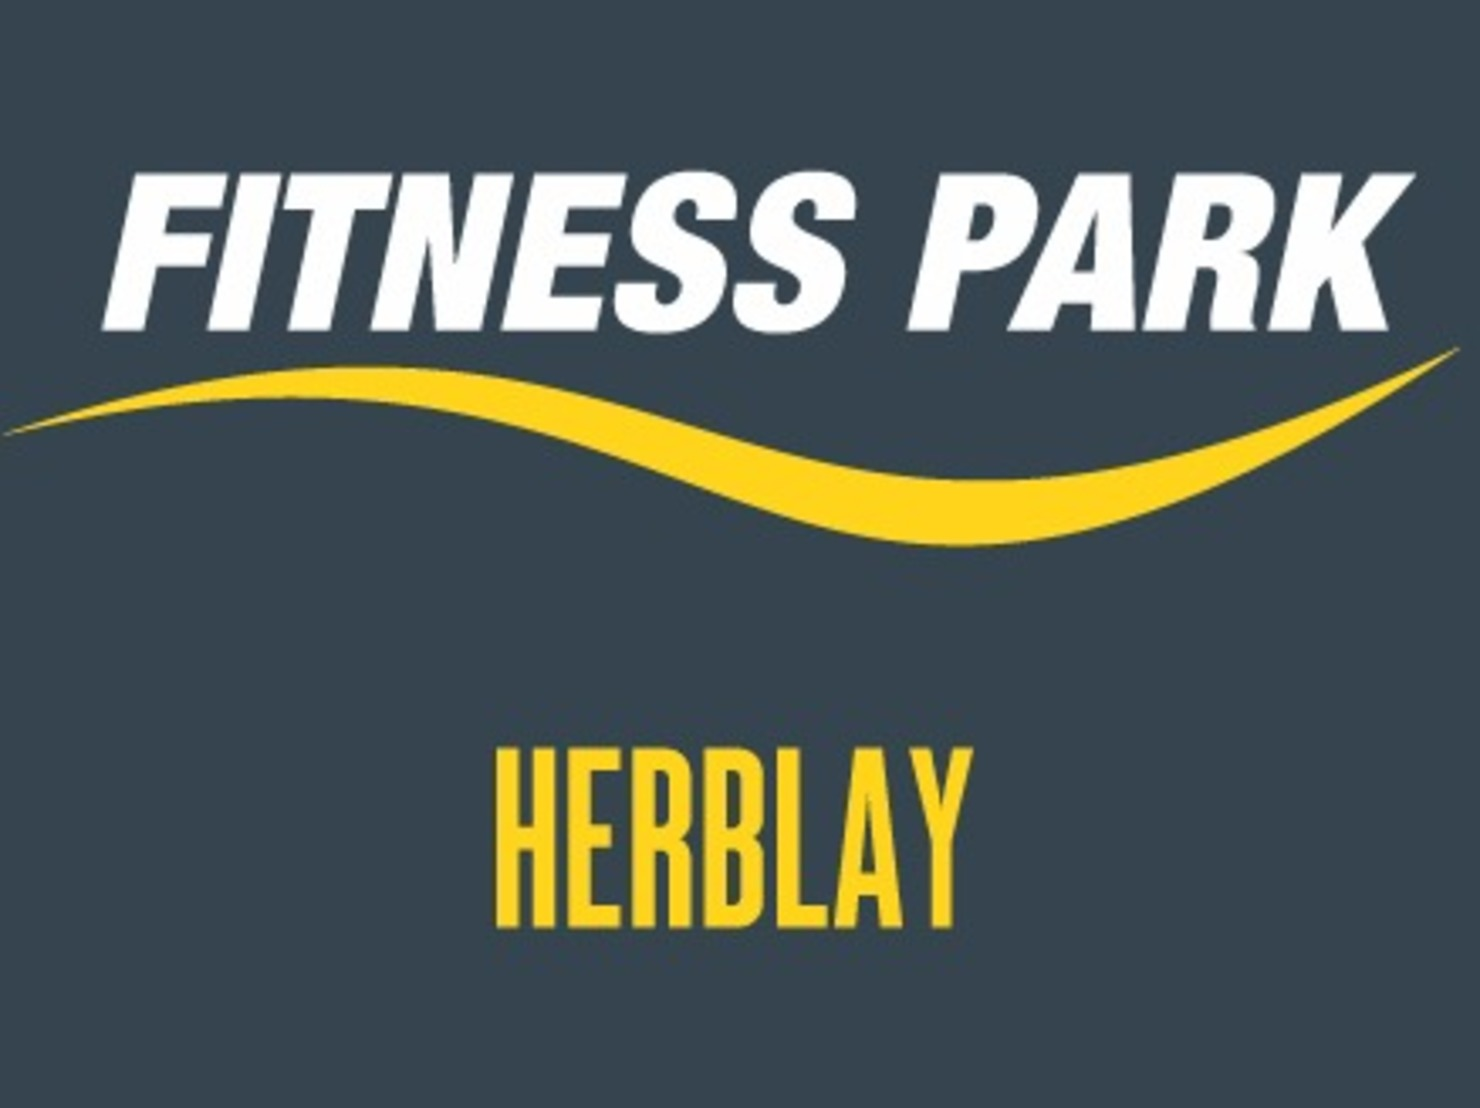 fitness park herblay tarifs avis horaires offre d couverte. Black Bedroom Furniture Sets. Home Design Ideas